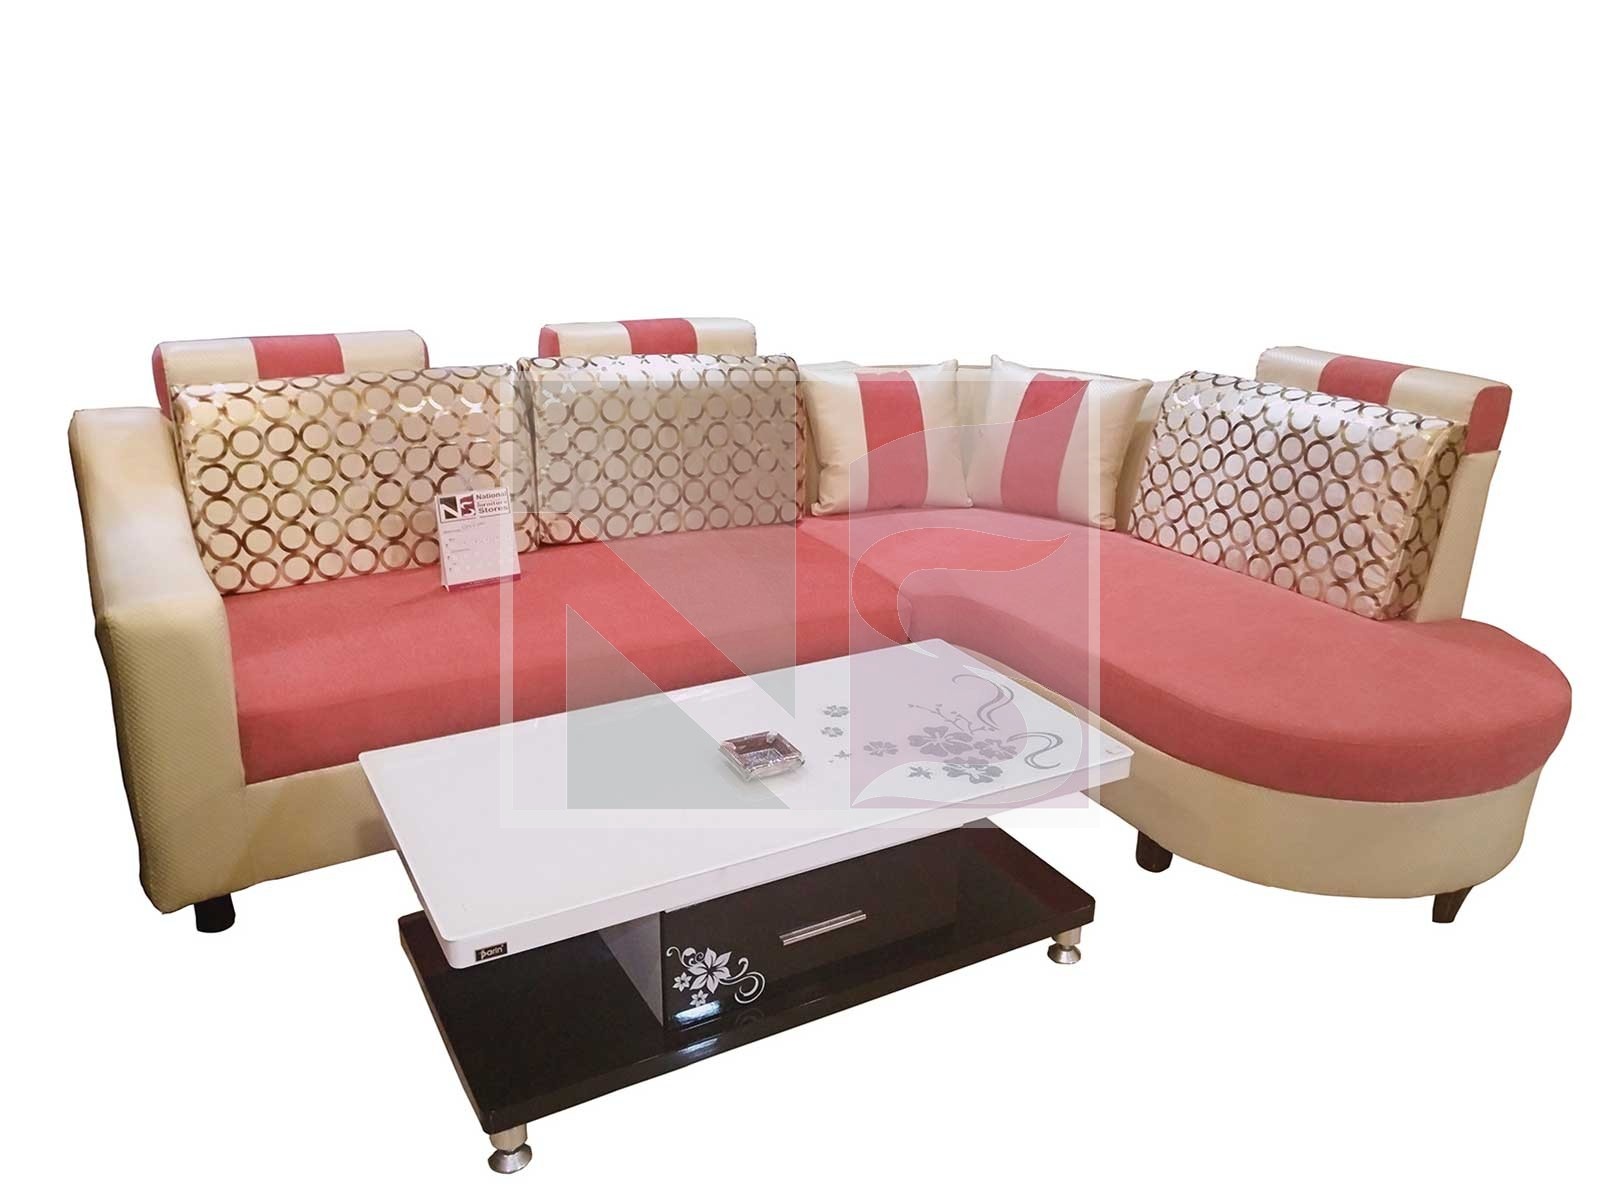 100 Buy Home Chairs Online India Buy Designer Bed 0034 Online In India Premium Collection